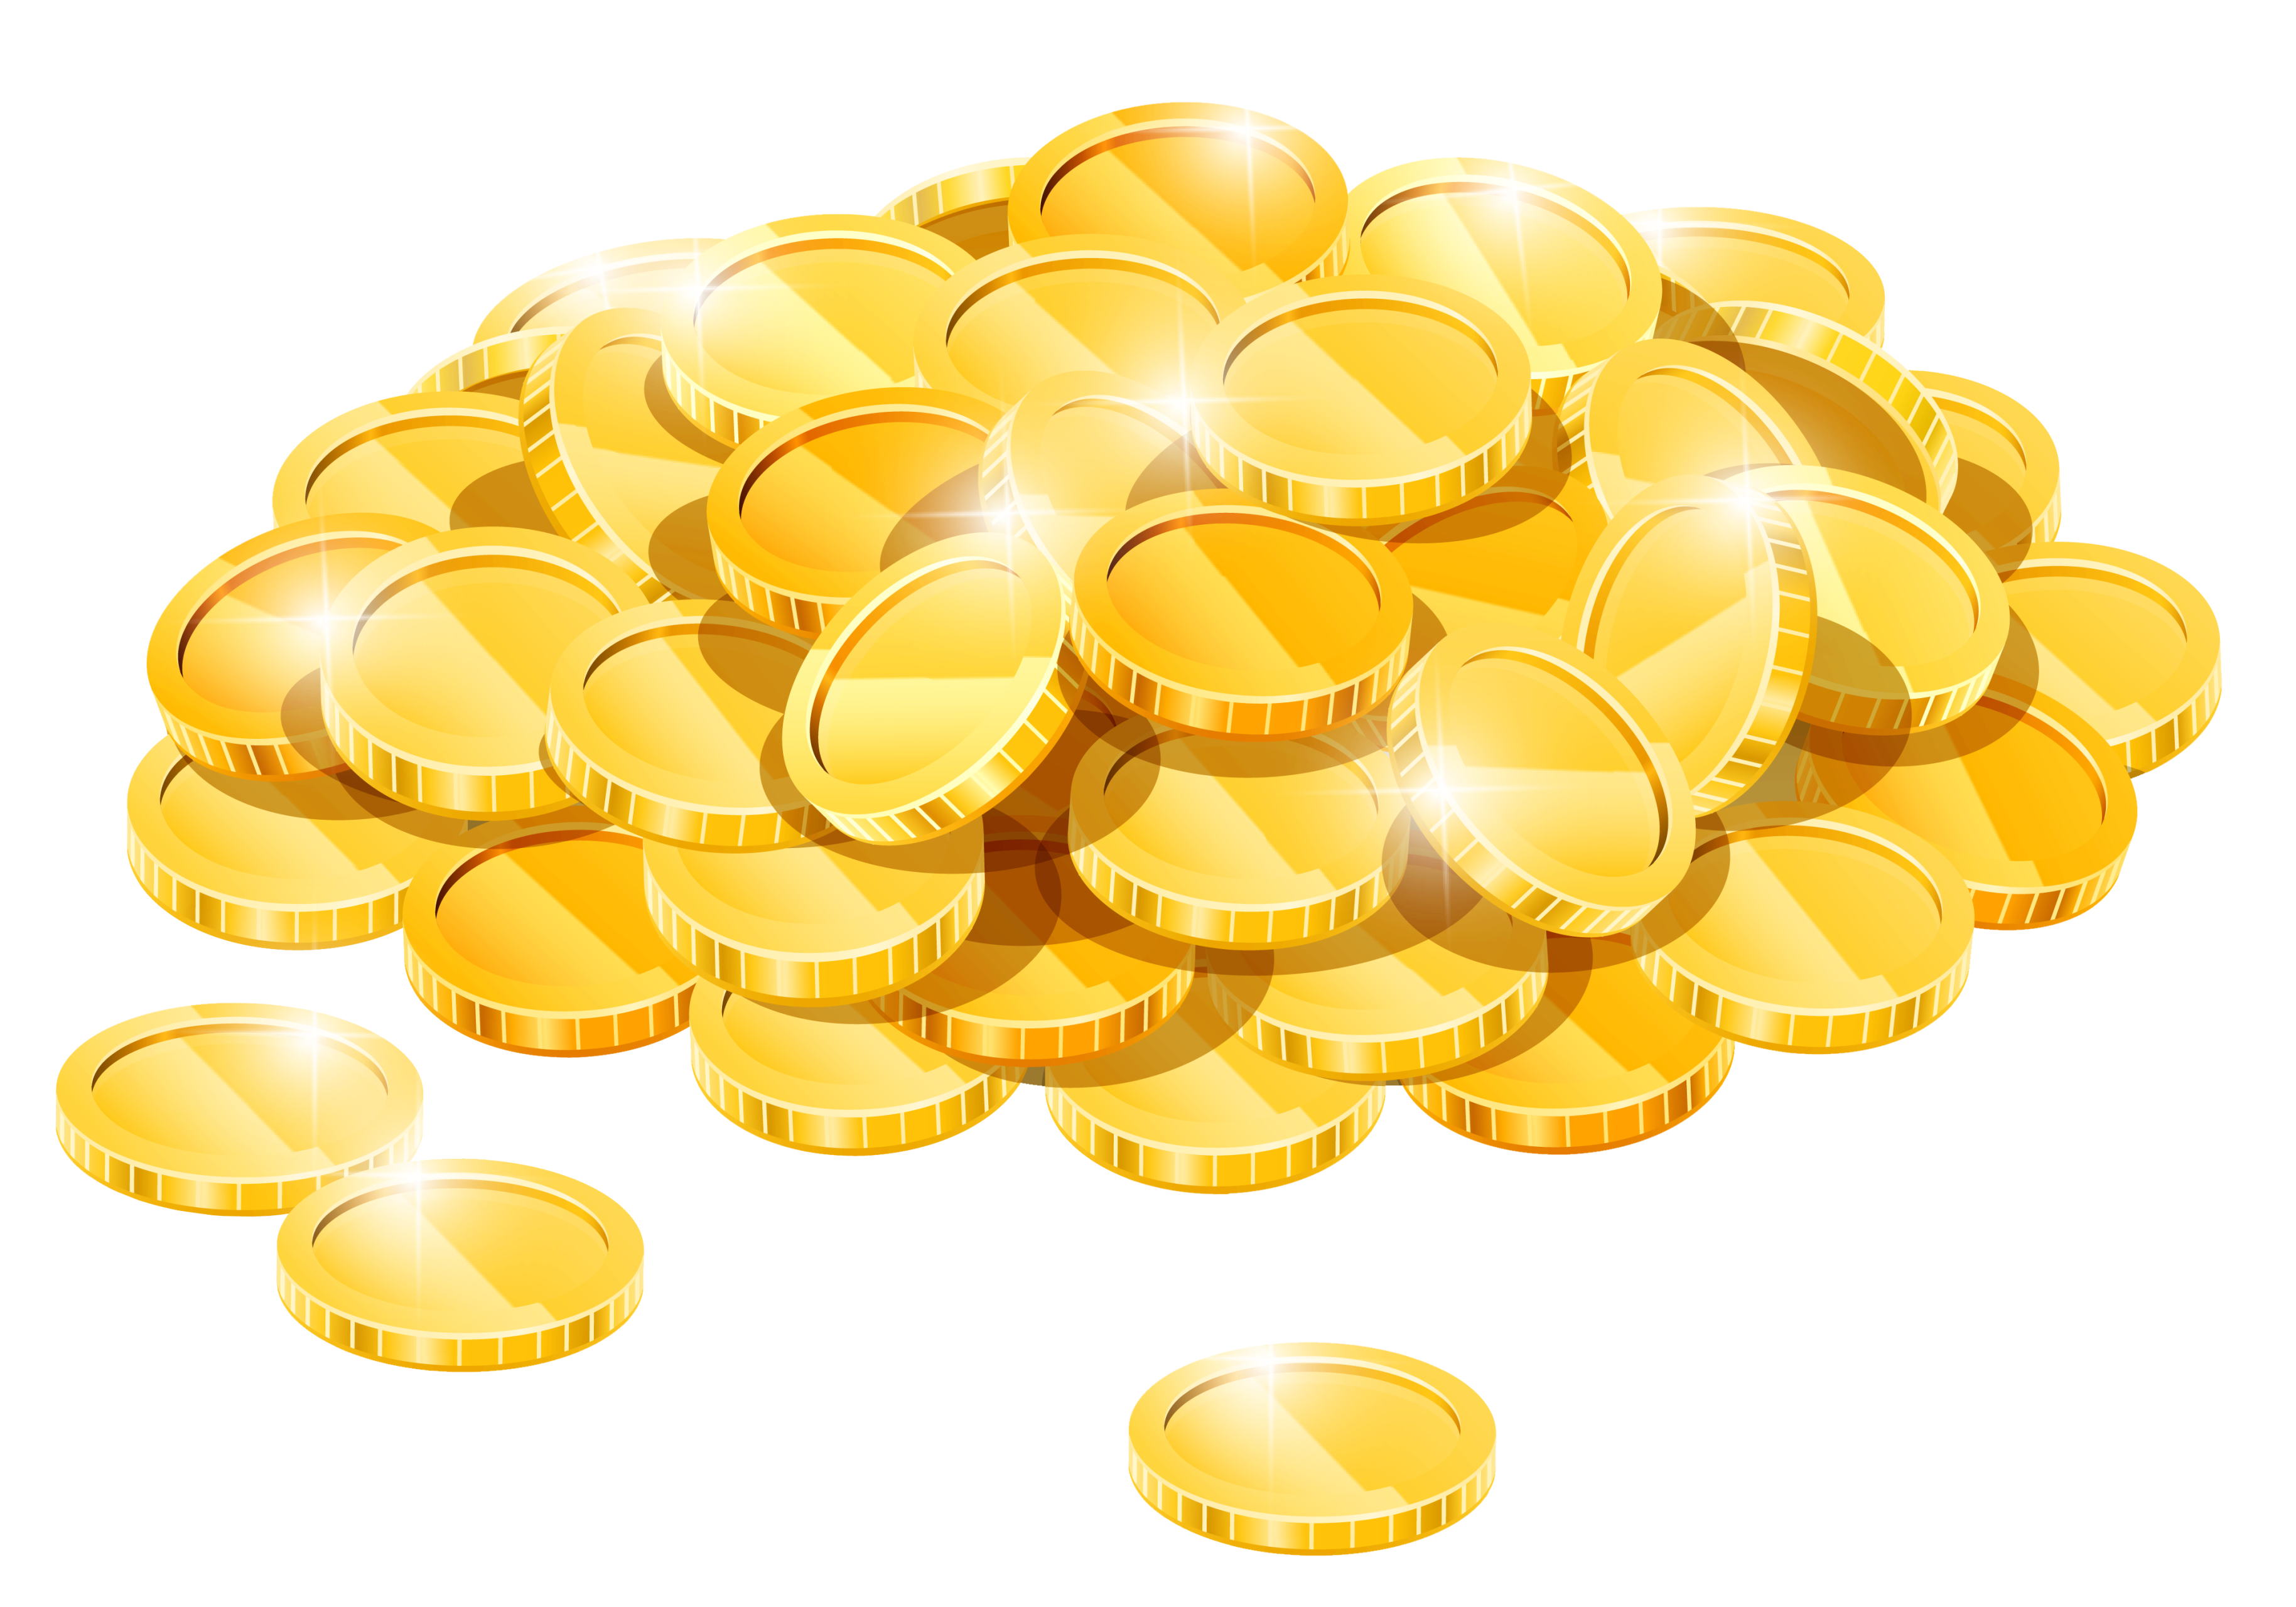 Gold coins clipart png. Image purepng free transparent